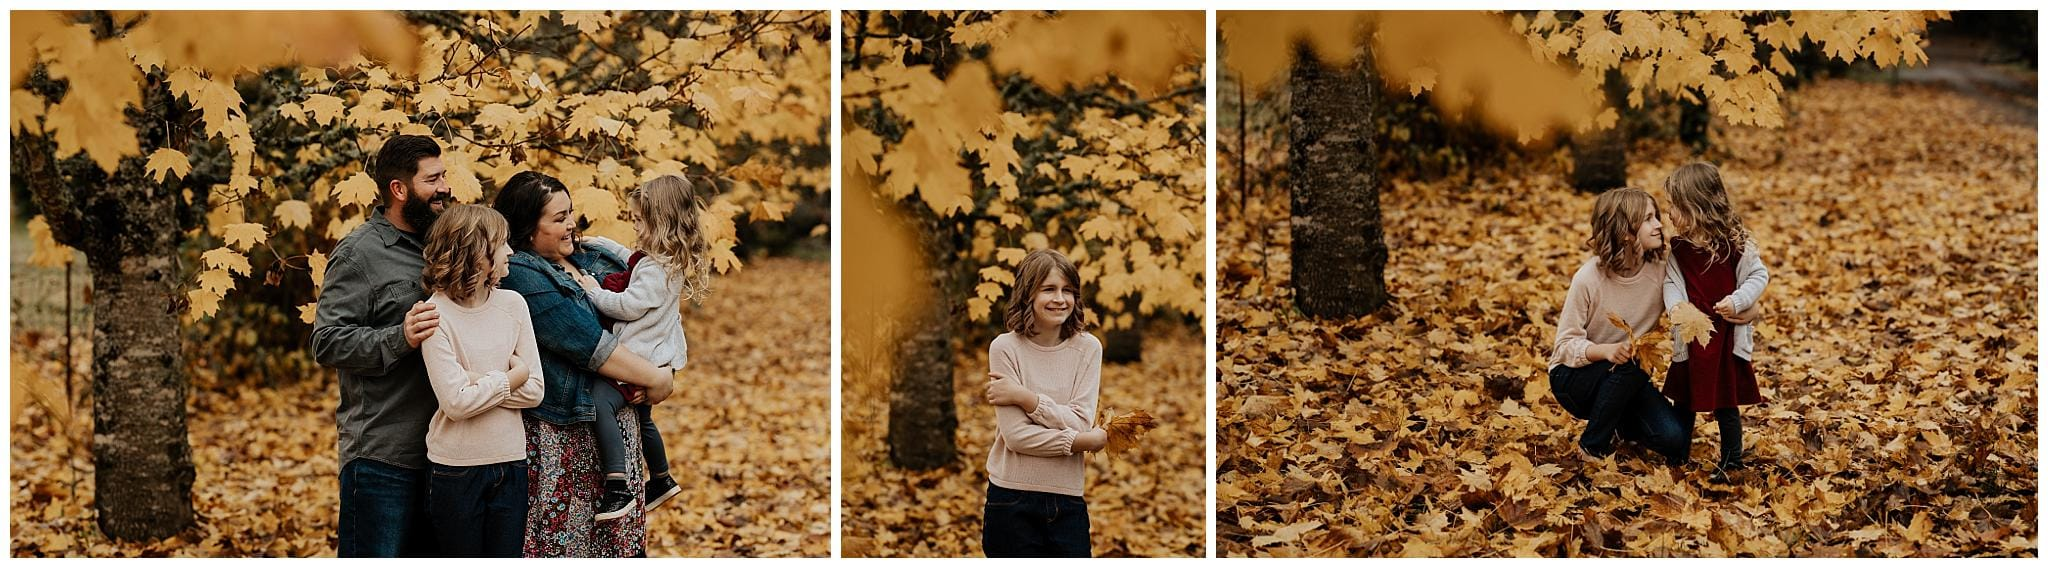 Fall family photos in yellow leaves on a cloudy day